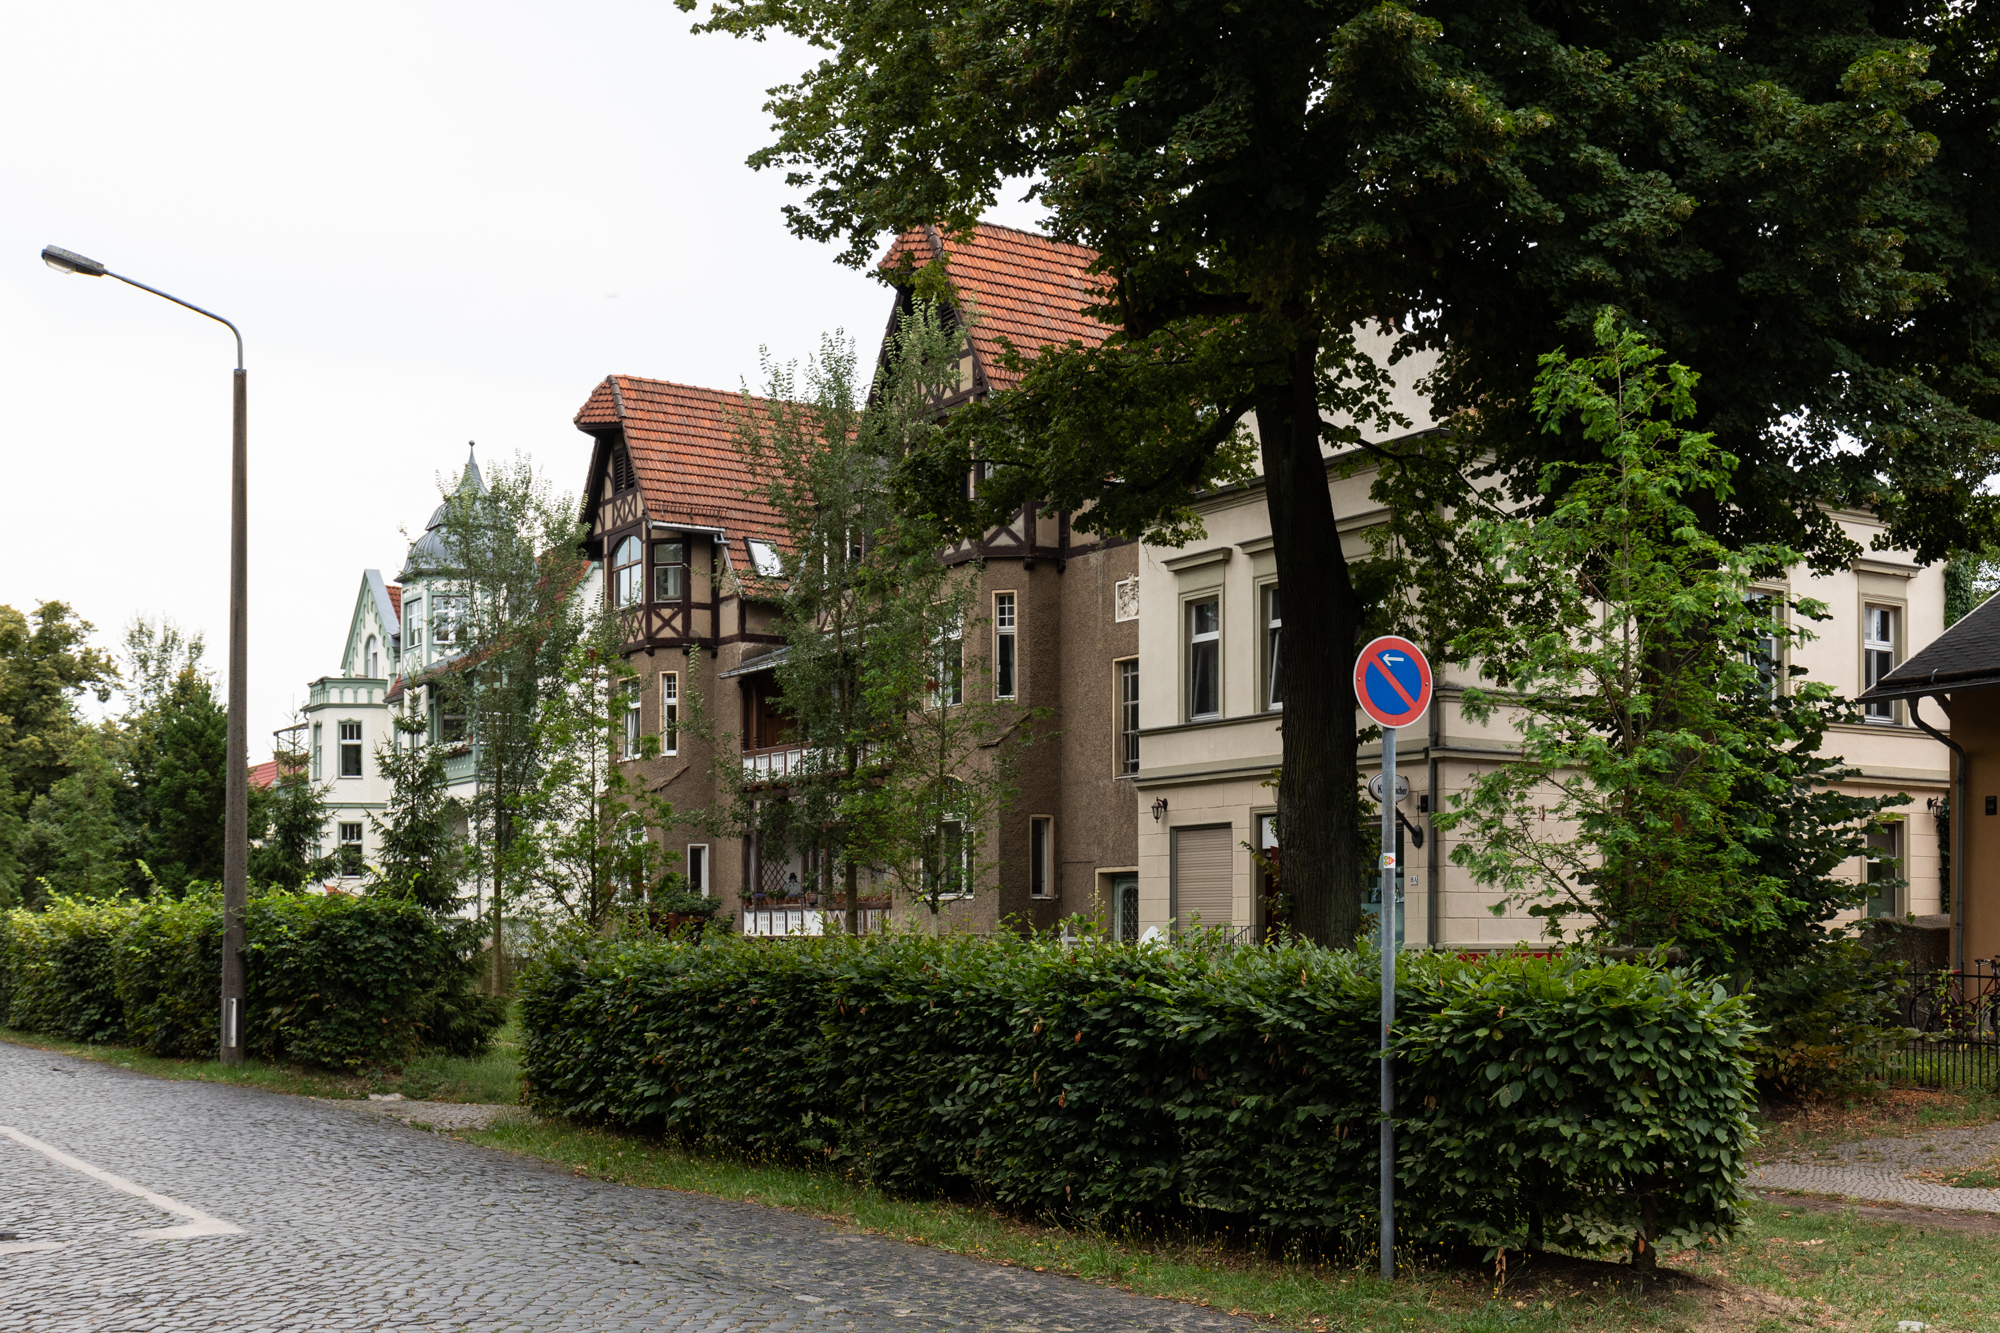 Houses on Waldmüllerstrasse in Klein Glienicke - a former East German enclave separated from West Berlin by the Berlin Wall and only accessible with special permission